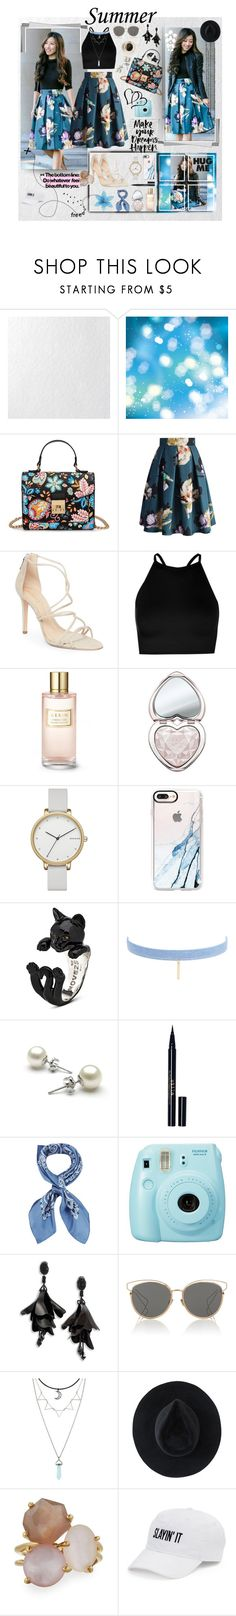 """summer👡🌞"" by olivia204 ❤ liked on Polyvore featuring Graham & Brown, Chicwish, Schutz, Boohoo, Estée Lauder, Too Faced Cosmetics, Skagen, Casetify, Jules Smith and Stila"